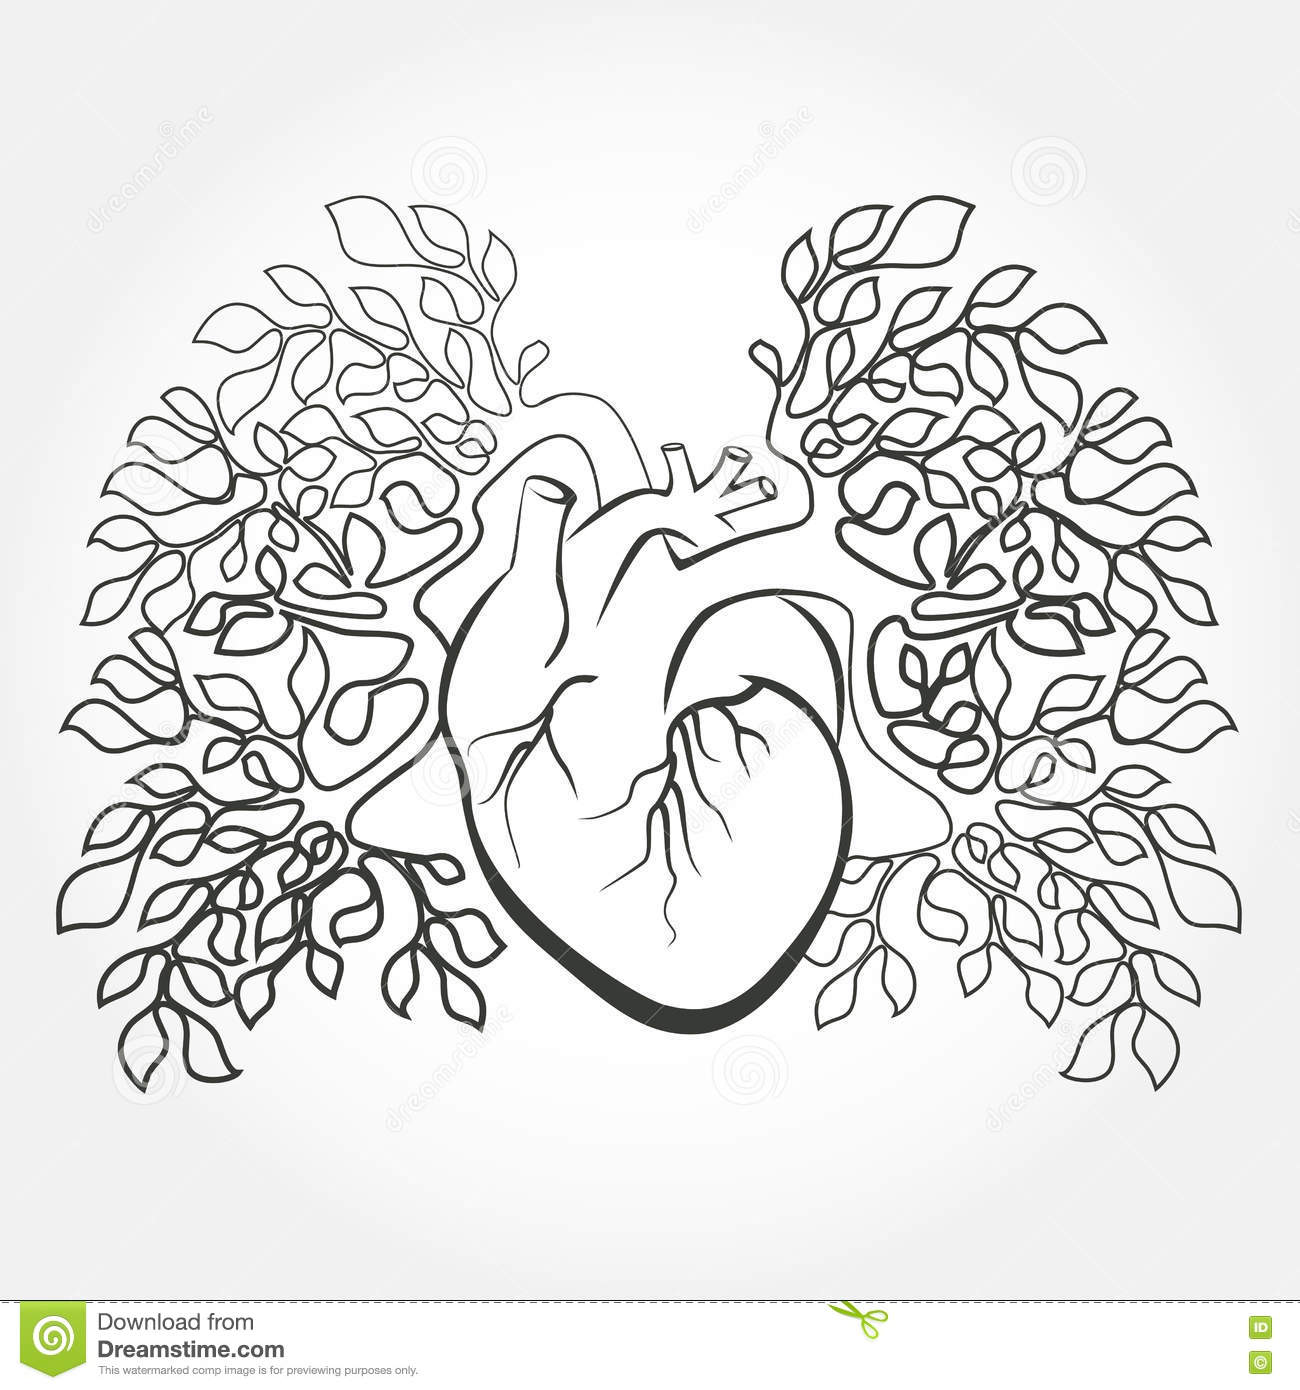 Human Heart And Lung Diagram